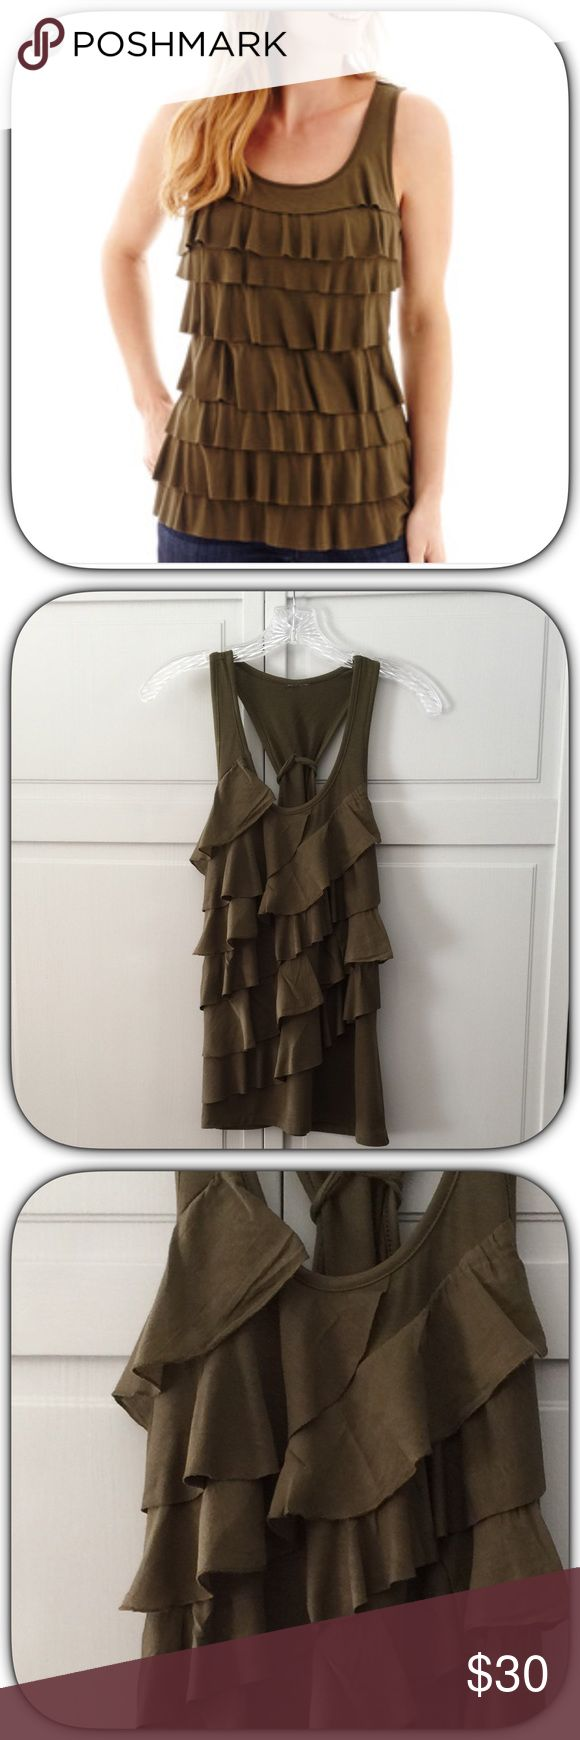 Beautiful Army Green Ruffled Racer Back Tank Top This is a super cute top! It ties in the back for a fun flirty look! It flows just beautifully! The stock pick is slightly different! Bust 17 Length 28 Boutique Tops Tank Tops